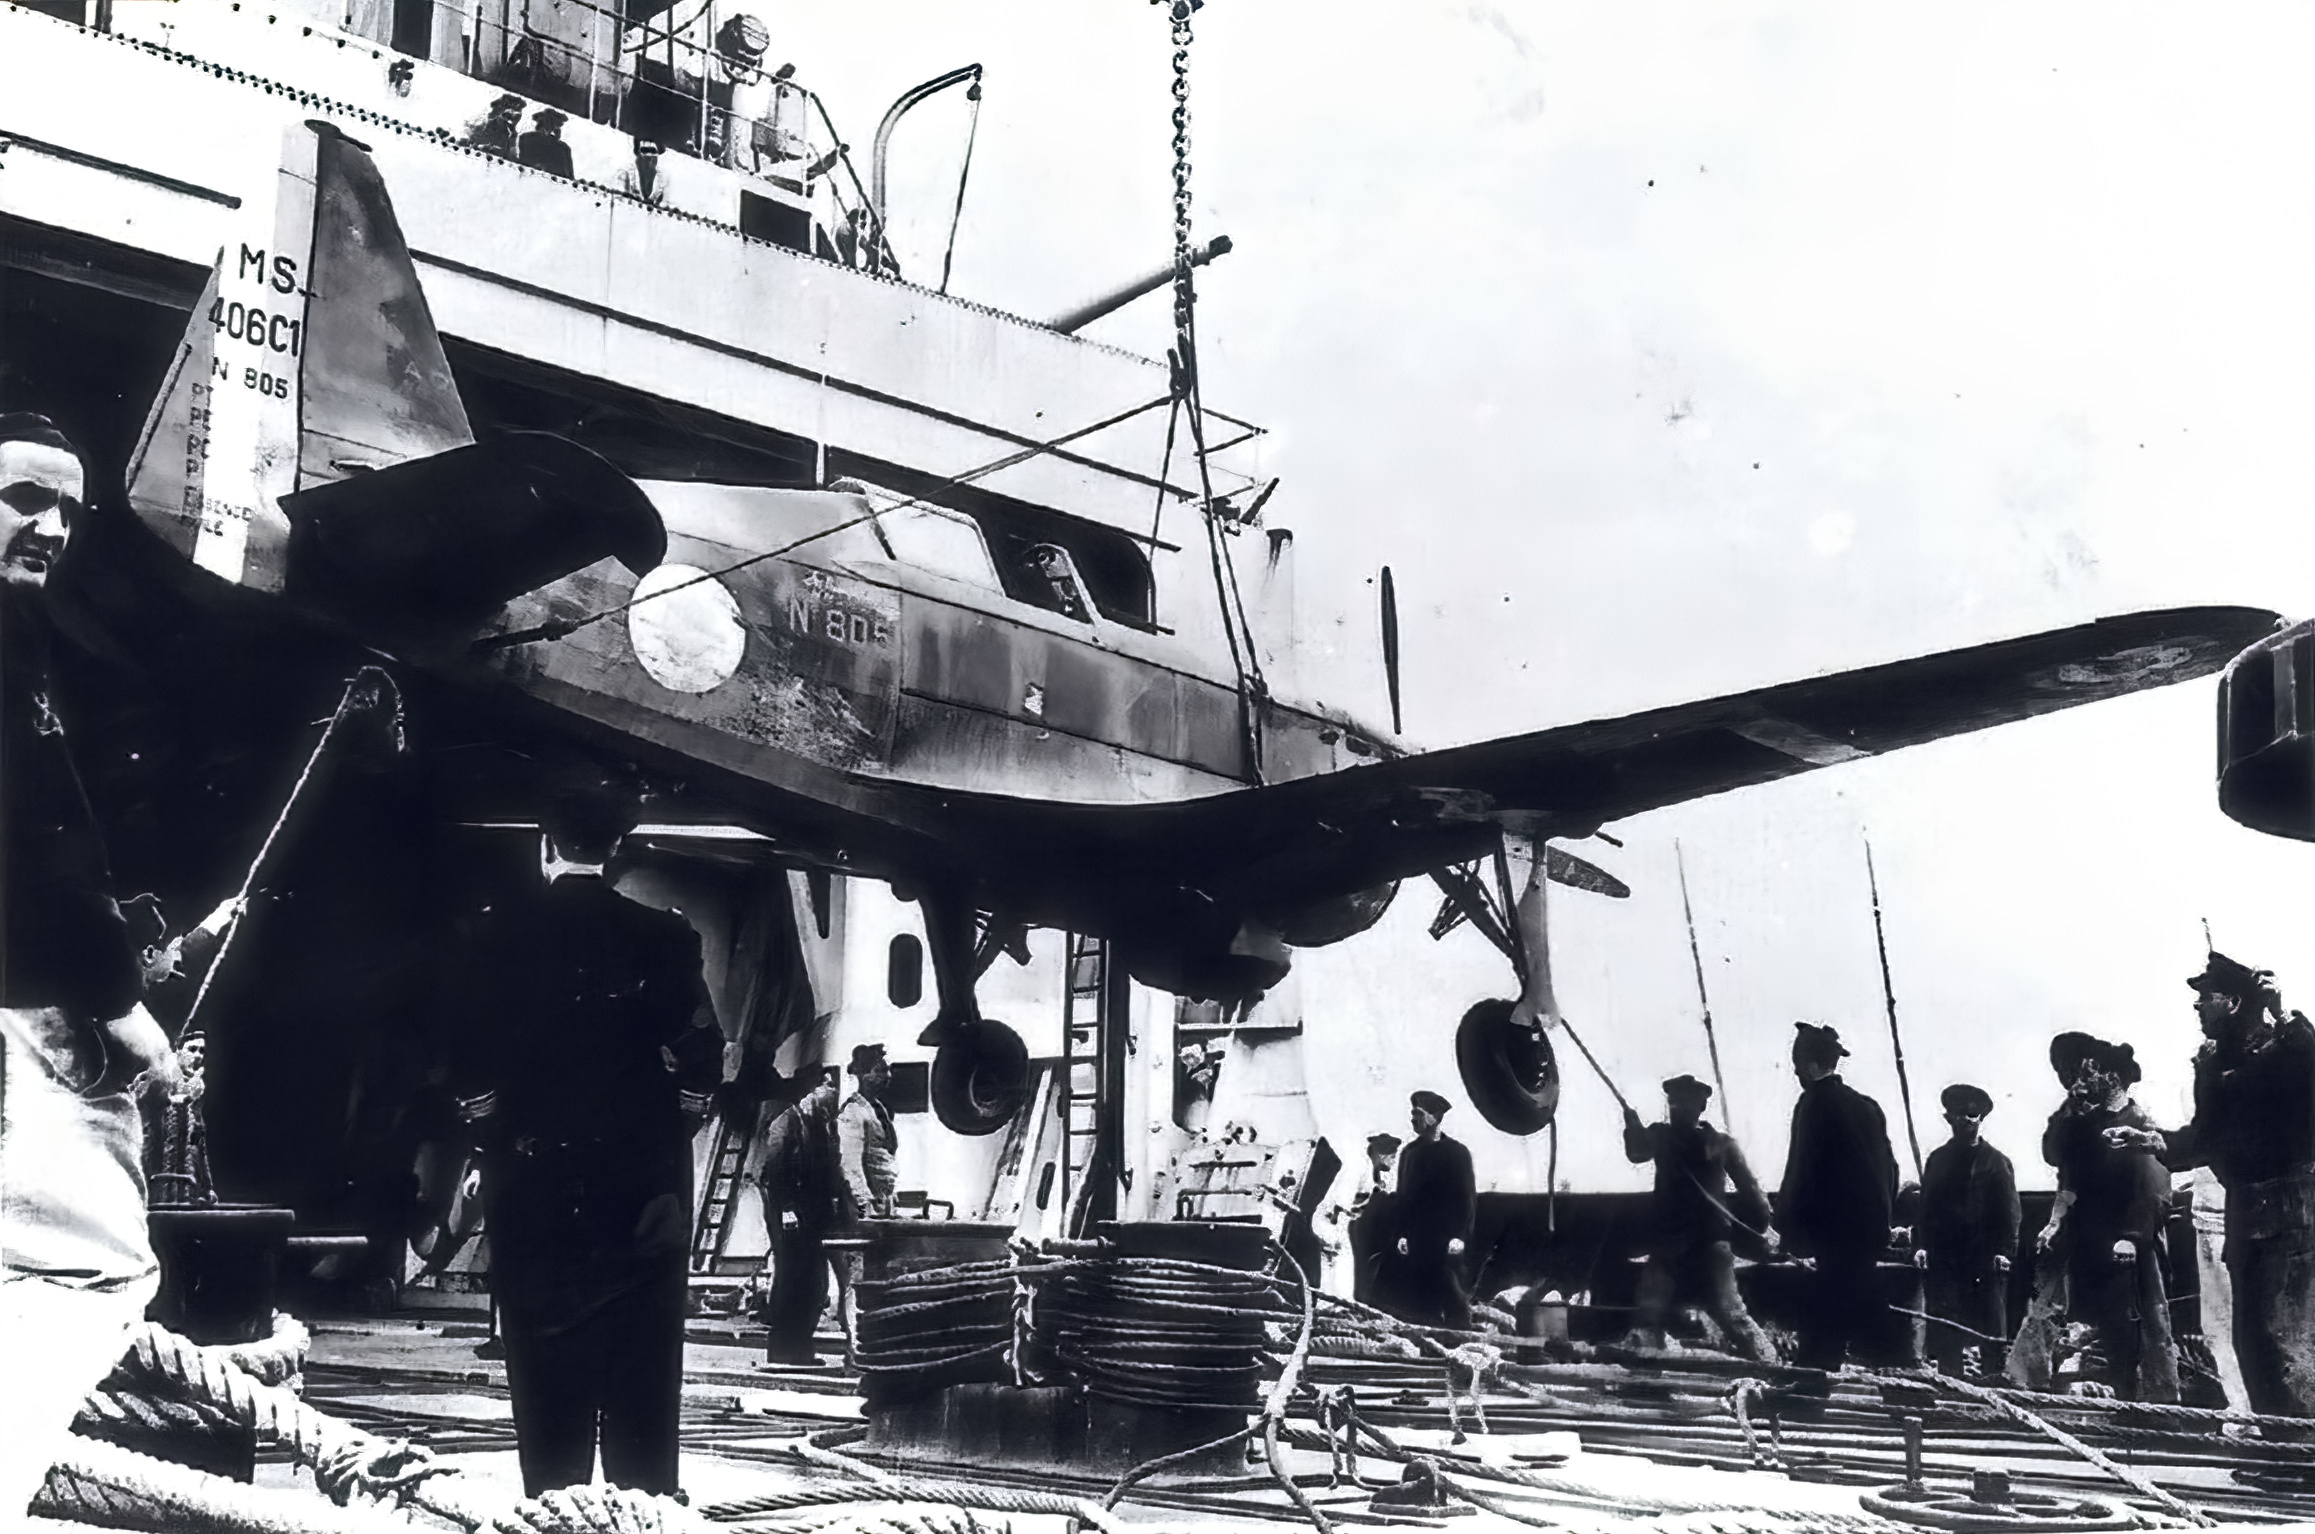 French Airforce Morane Saulnier MS 406C sn801 being loaded abaord a French Navy ship ebay 01